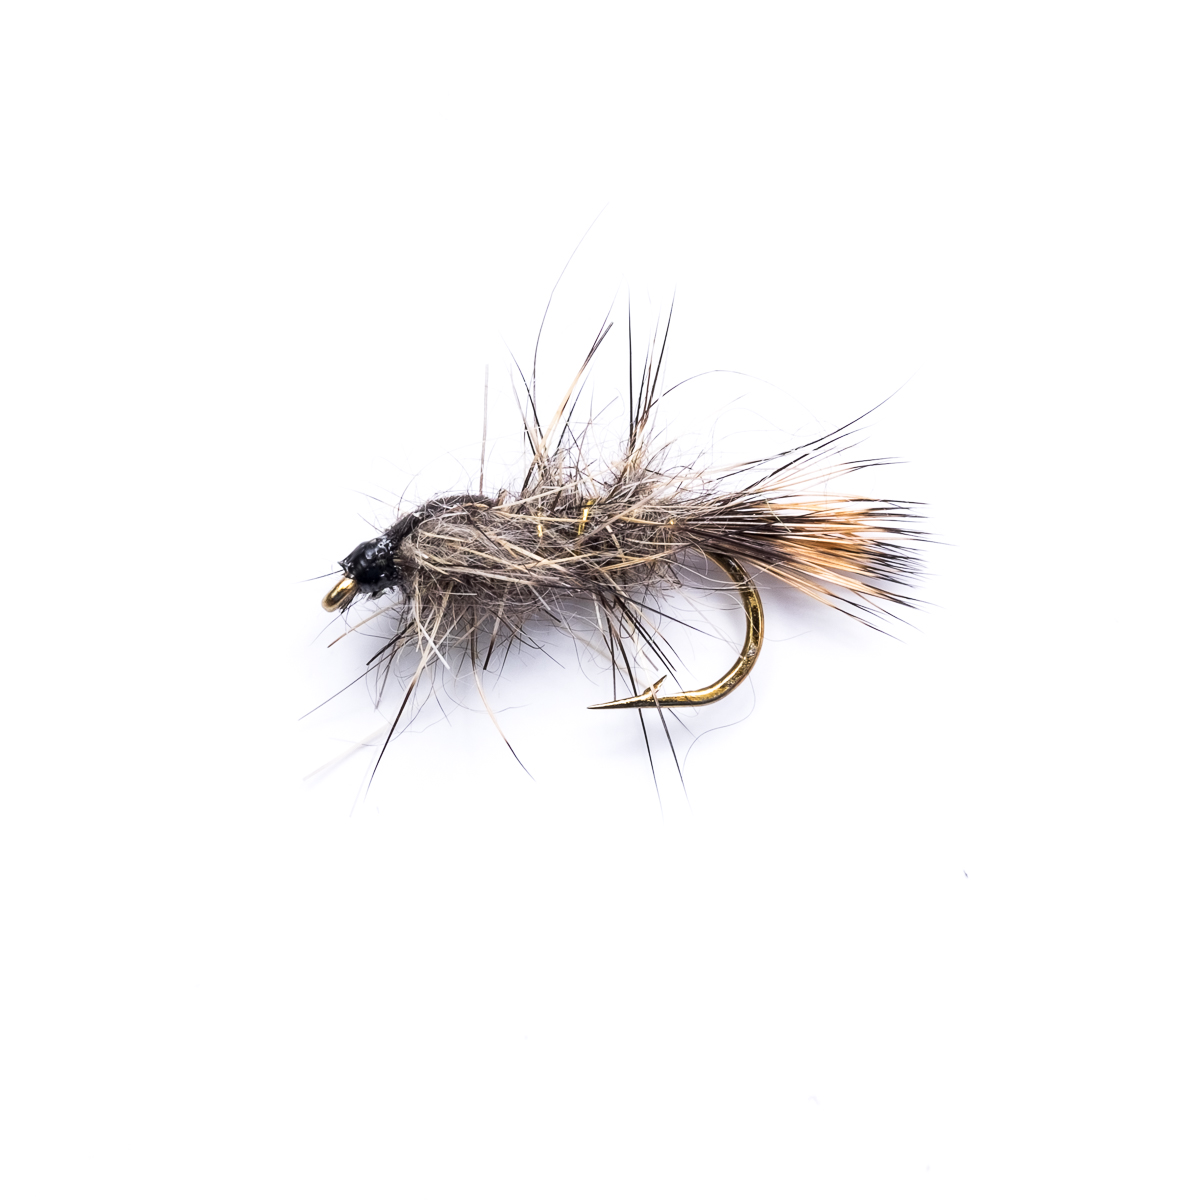 18 nymphs trout fly fishing flies grhe pheasant tail for Fly fishing nymphs